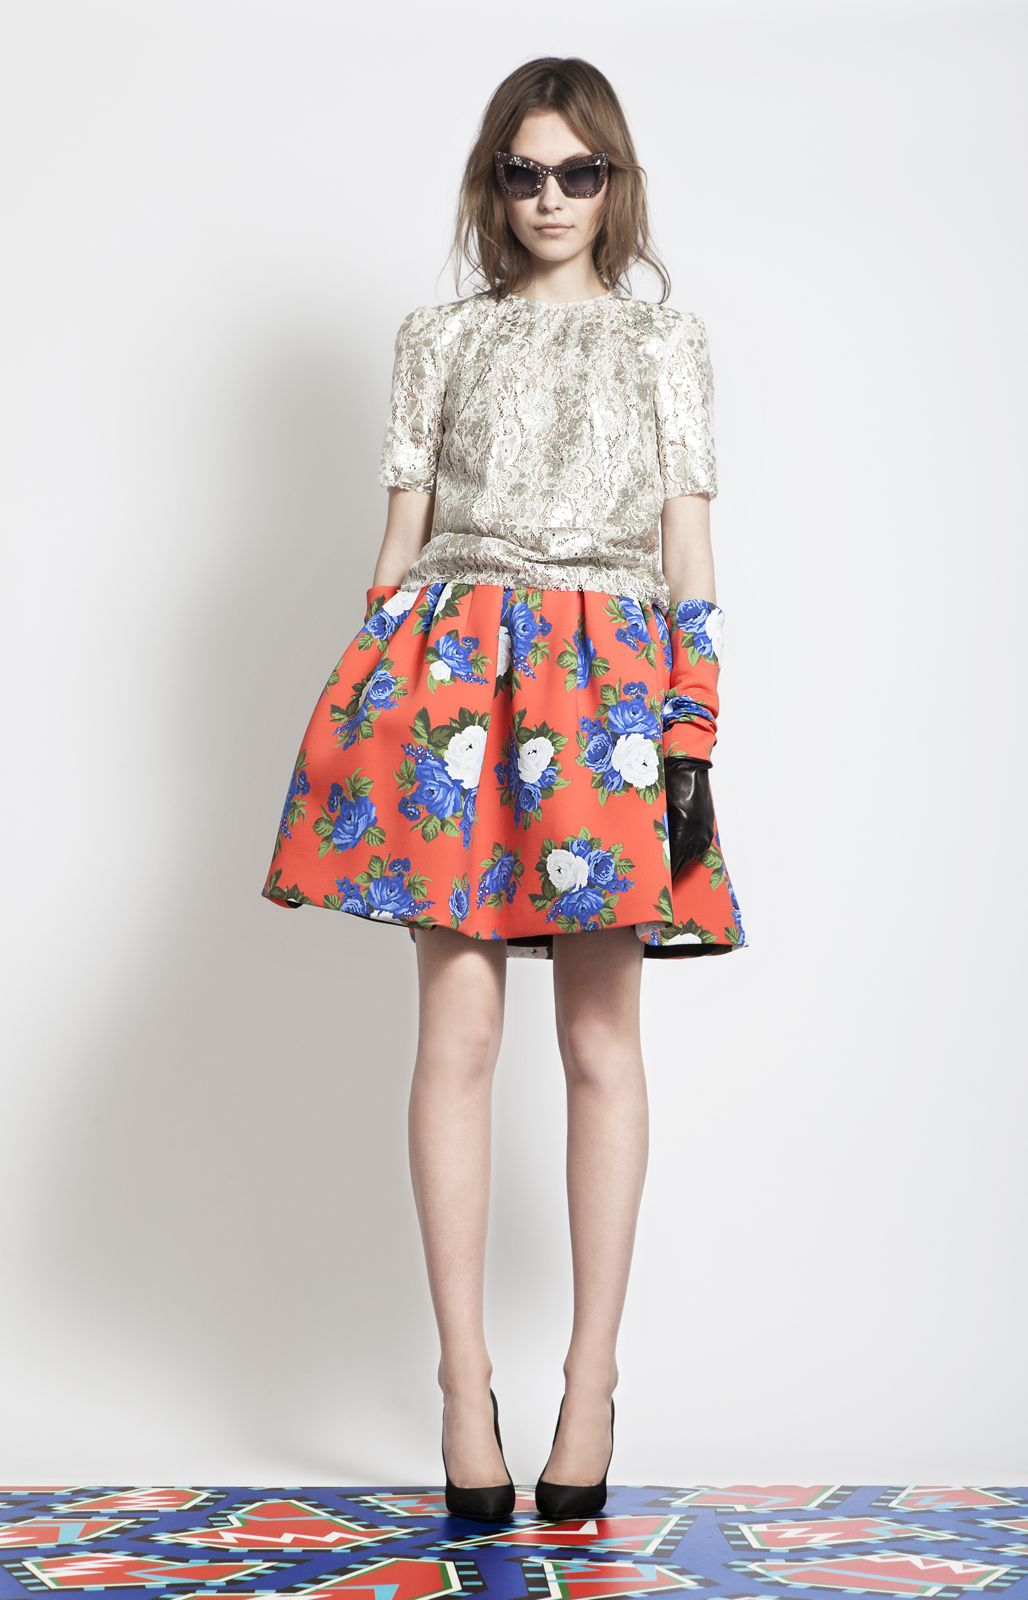 MSGM Pre-Fall Winter 2012-2013 Women's Collection